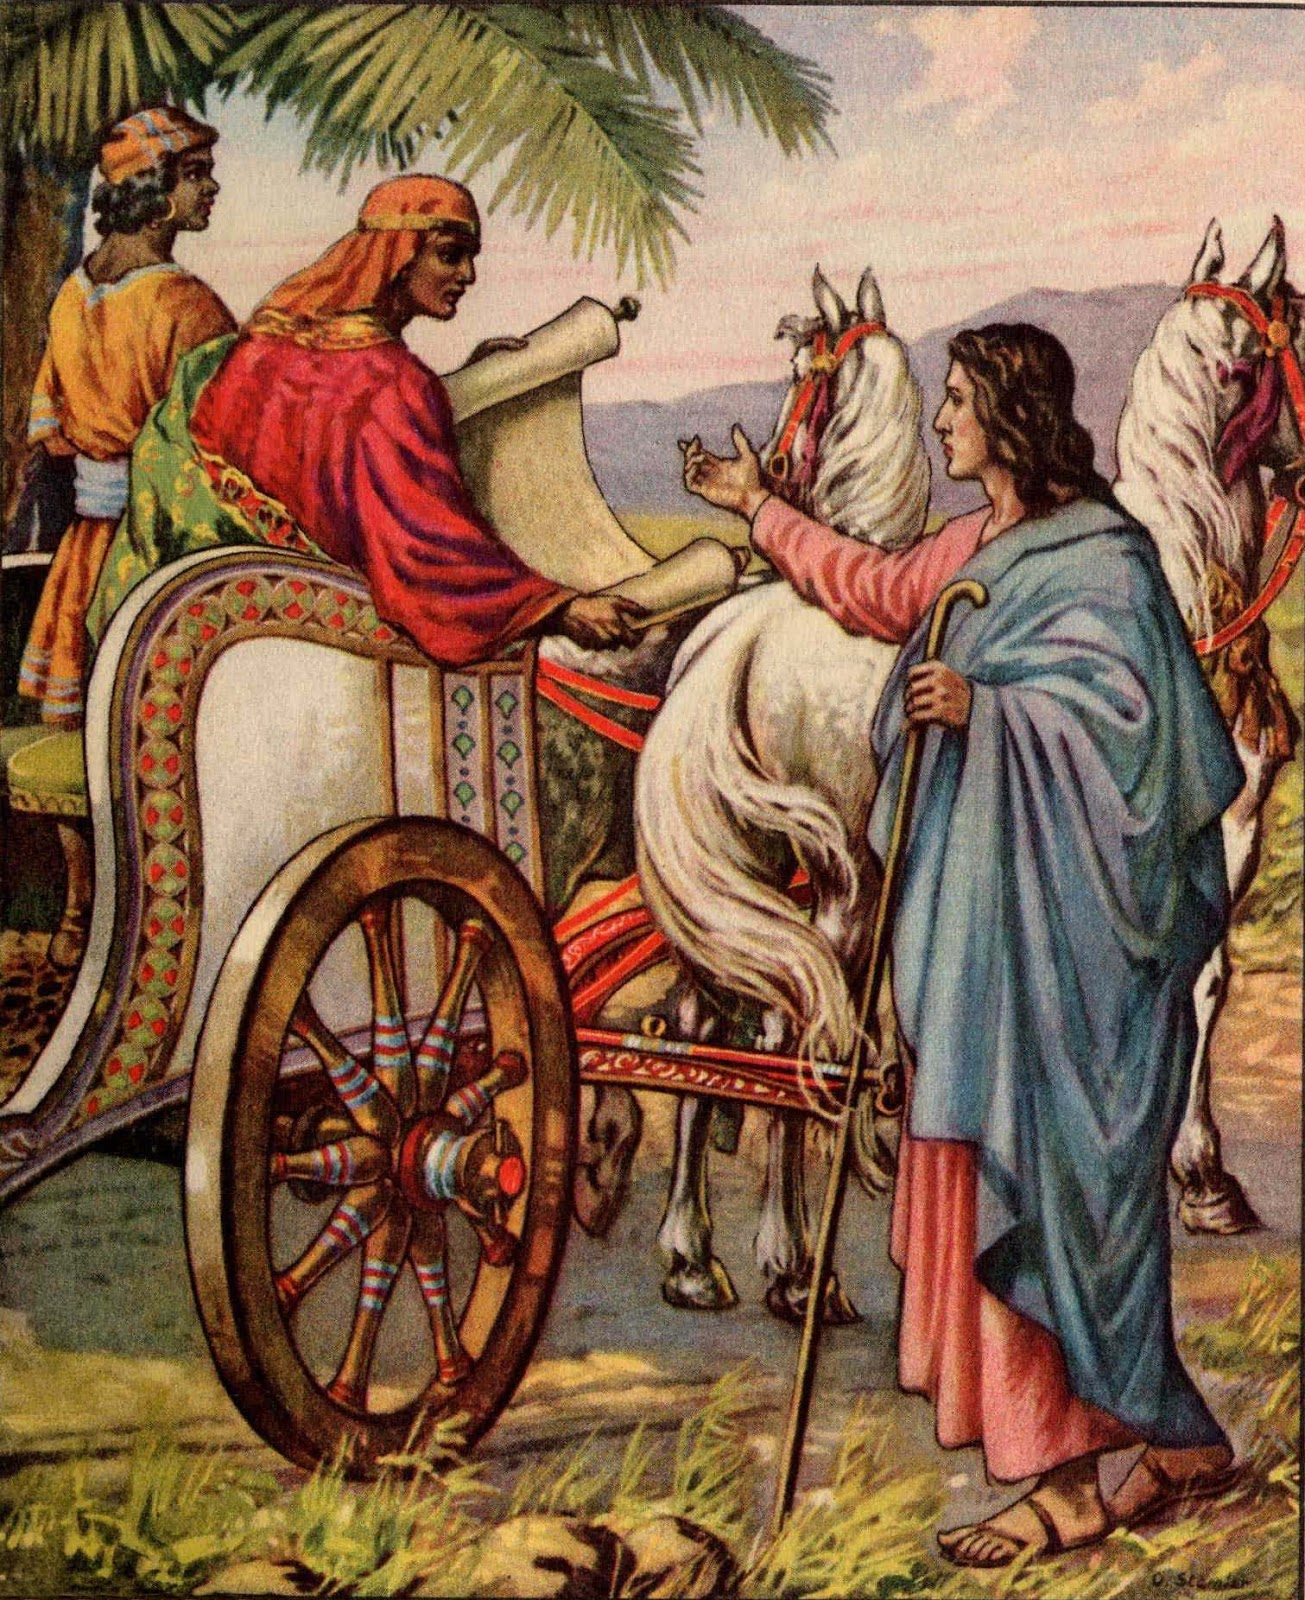 Philip, a deacon of the early church, was walking down a desert road on his way to Gaza, he saw an Ethiopian eunuch sitting in his chariot reading from the scriptures.